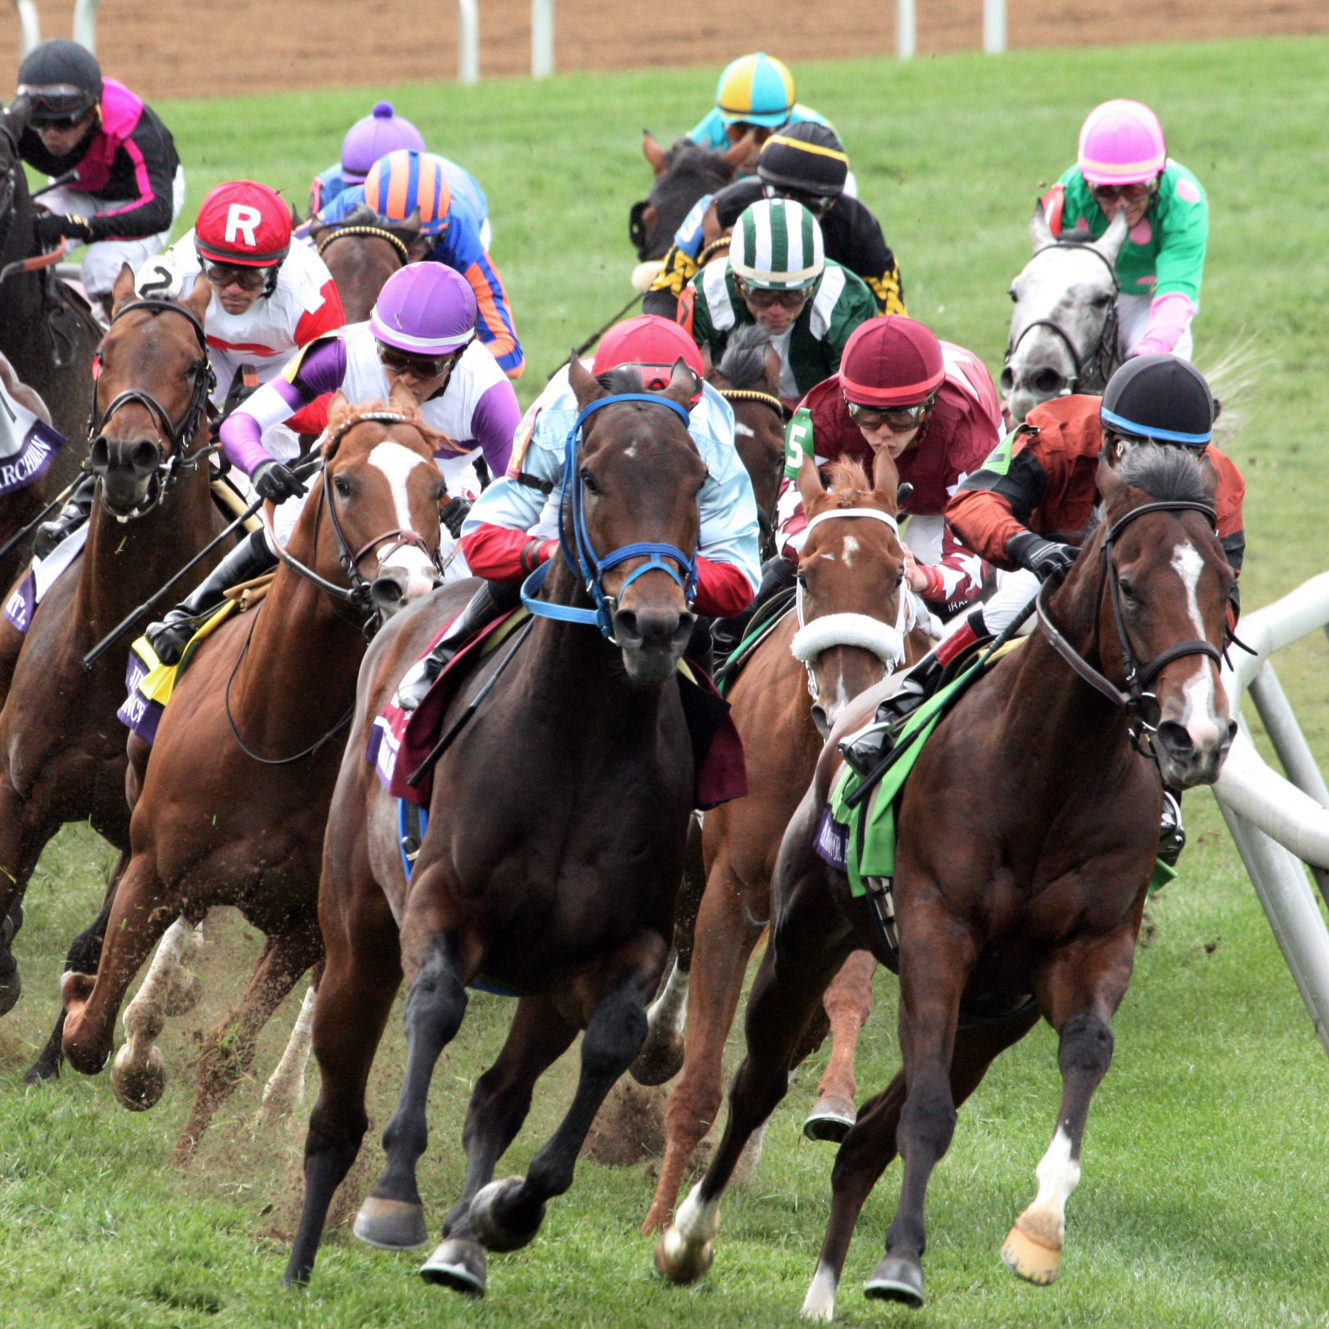 Breeders' Cup 2018 analysis and picks: BC Turf at Churchill Downs